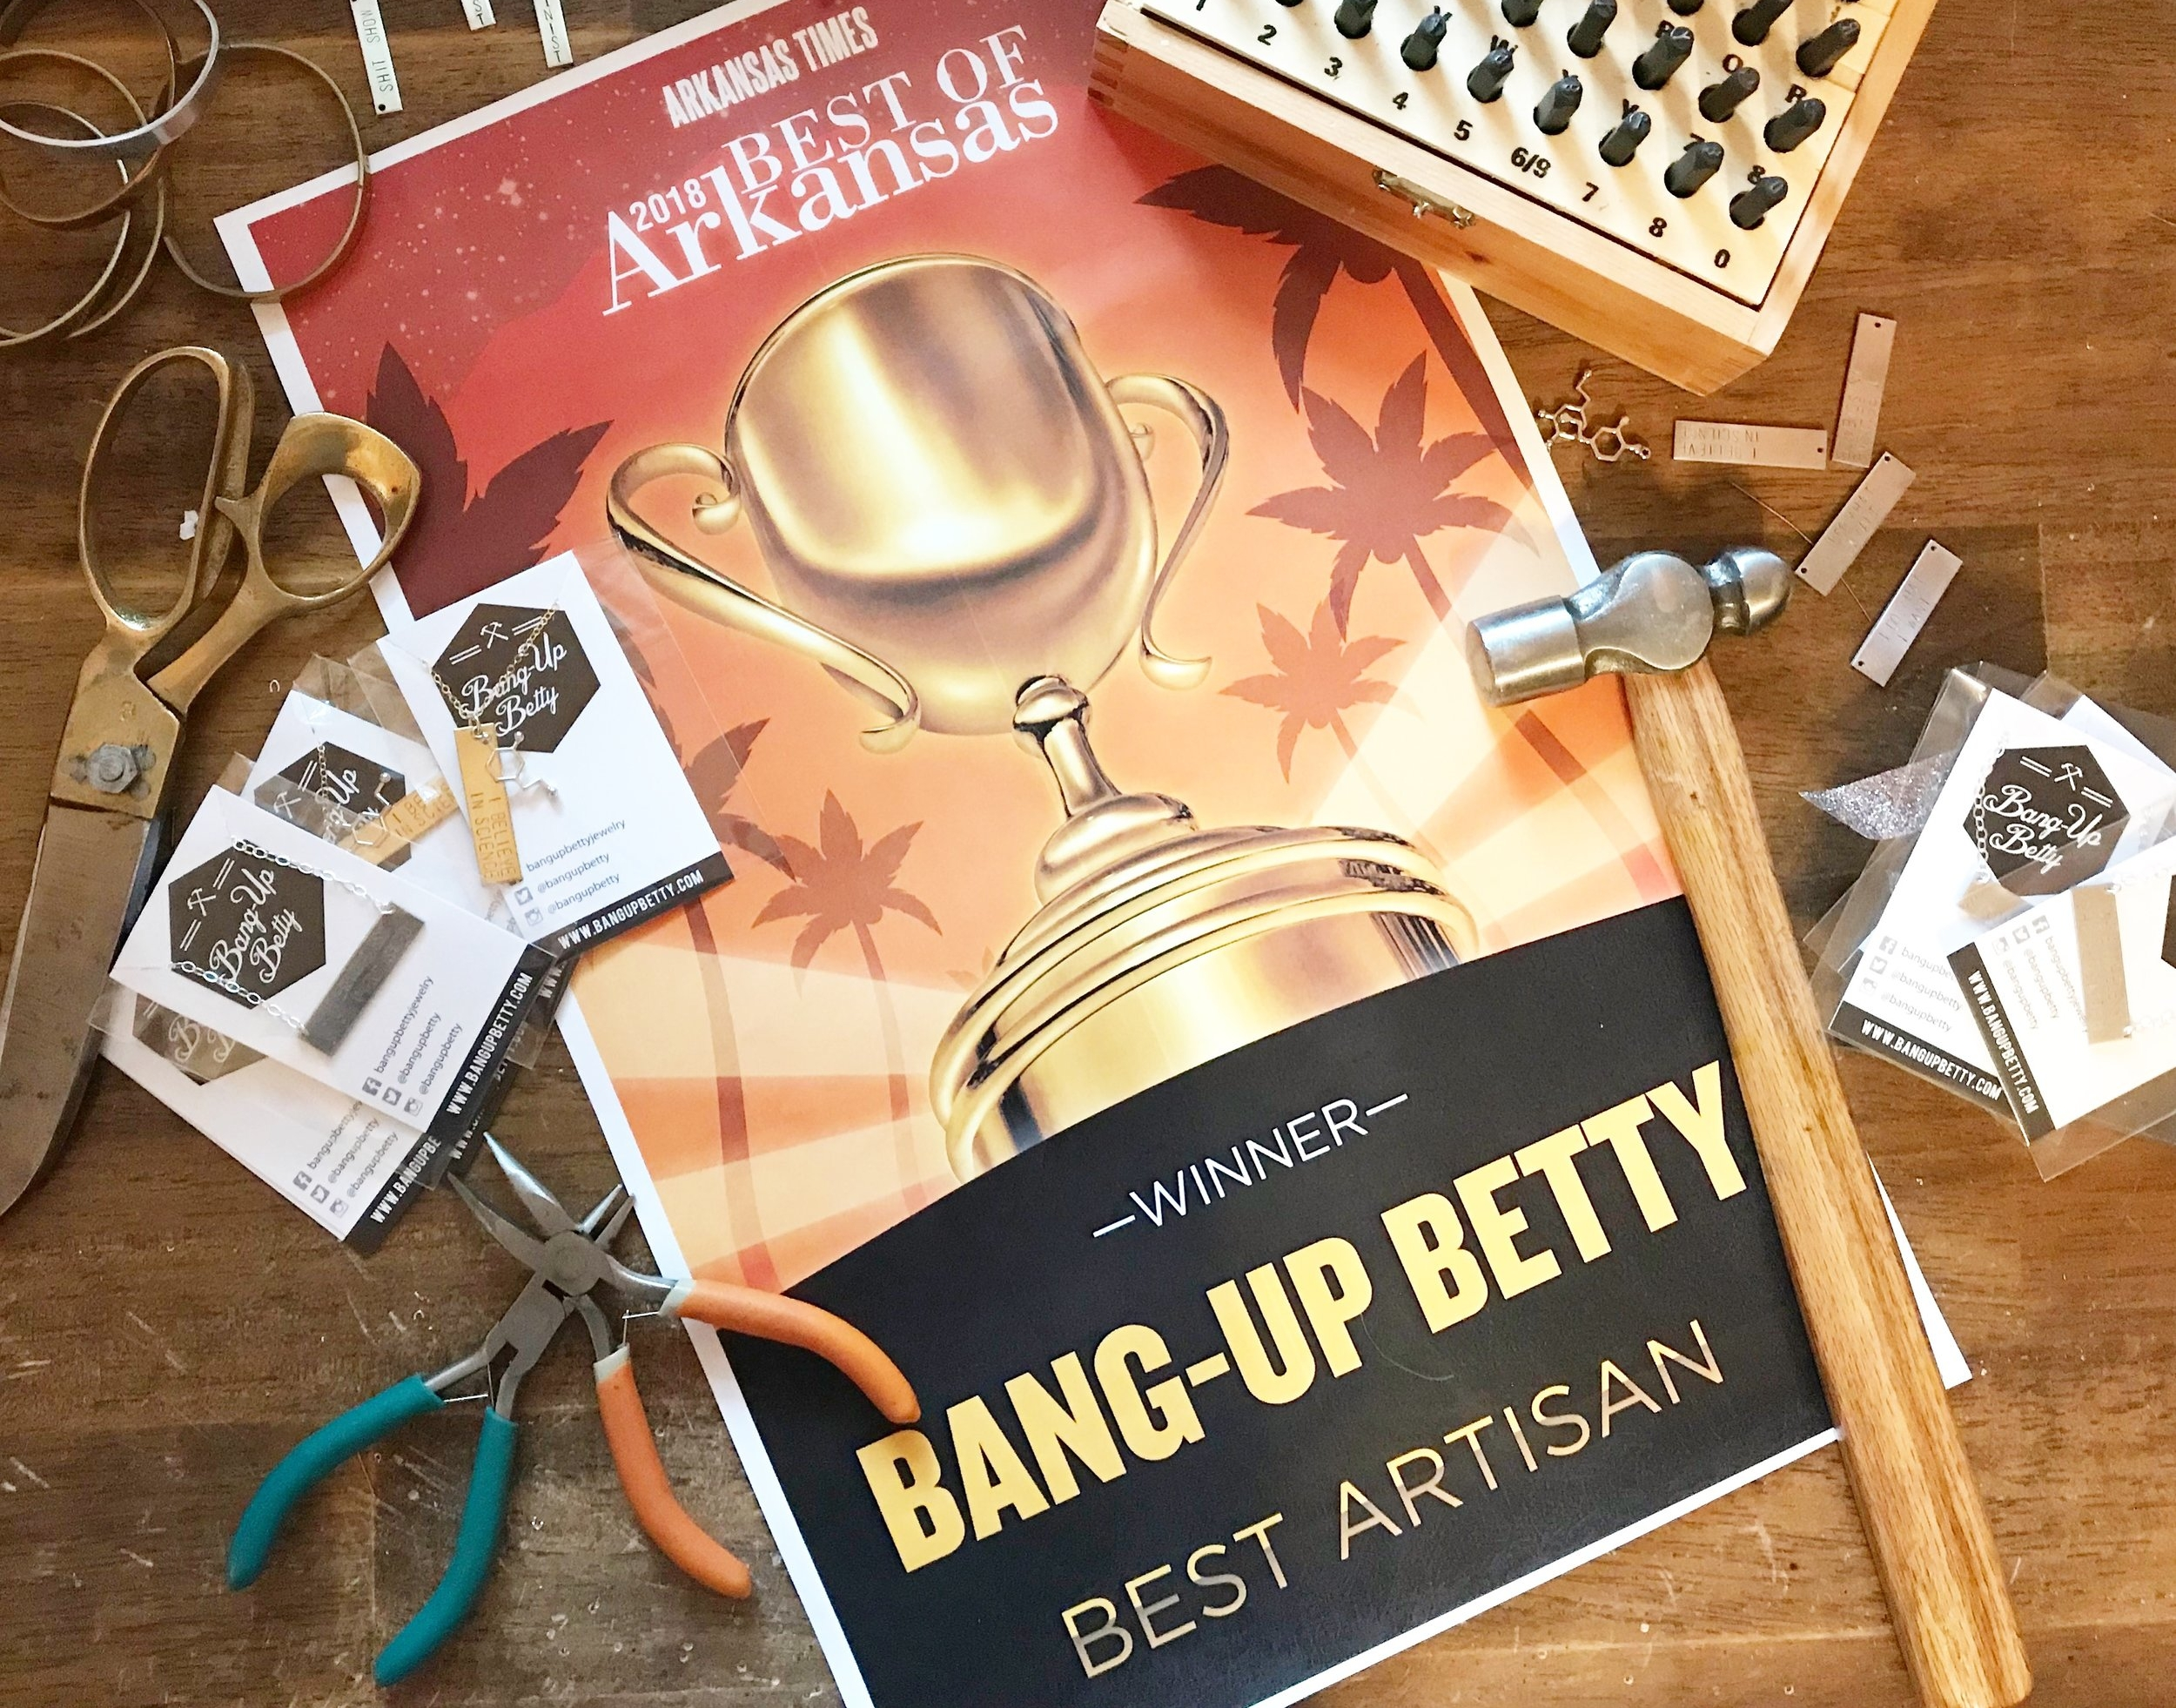 Bang-Up Betty jewelry voted best artisan crafter in the Arkansas Times's best of Arkansas